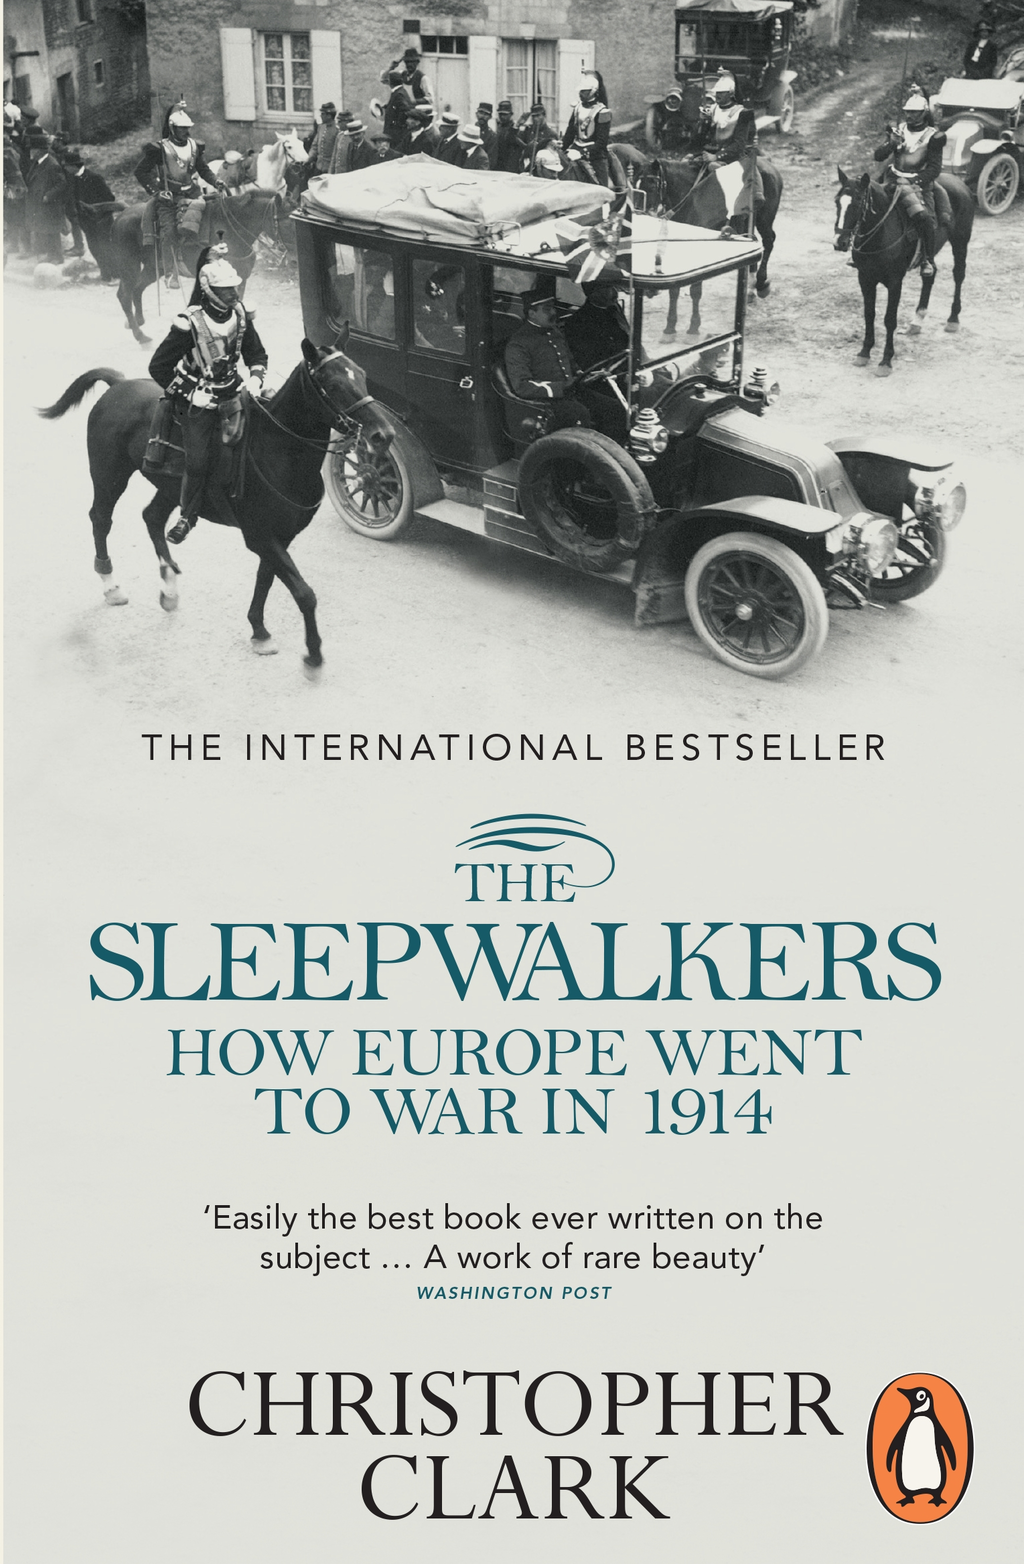 The Sleepwalkers How Europe Went to War in 1914